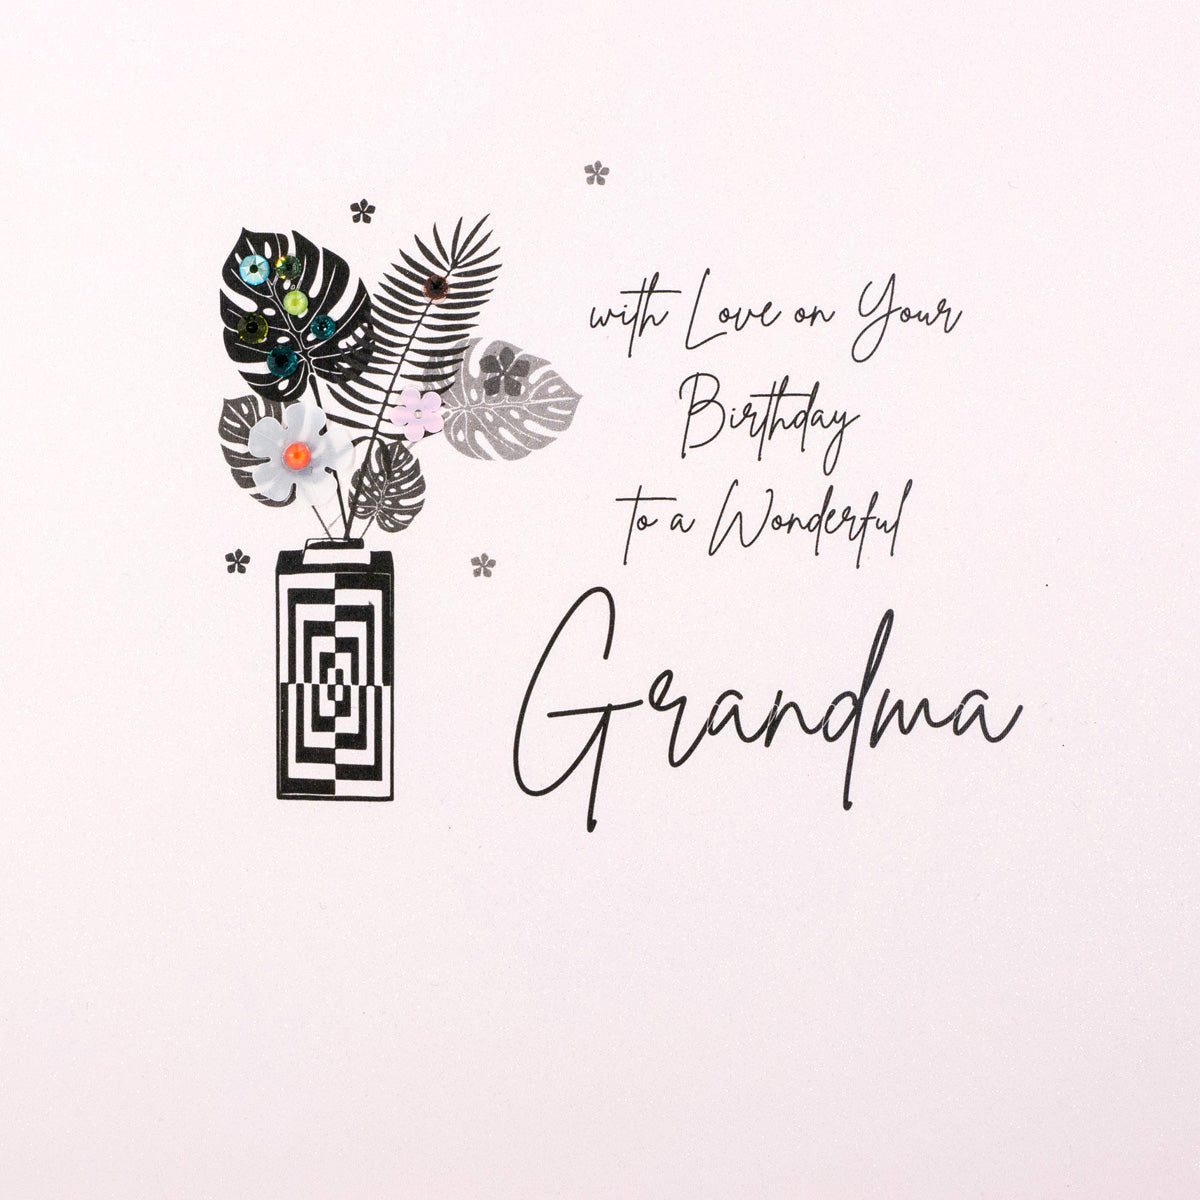 With Love To a Wonderful Grandma